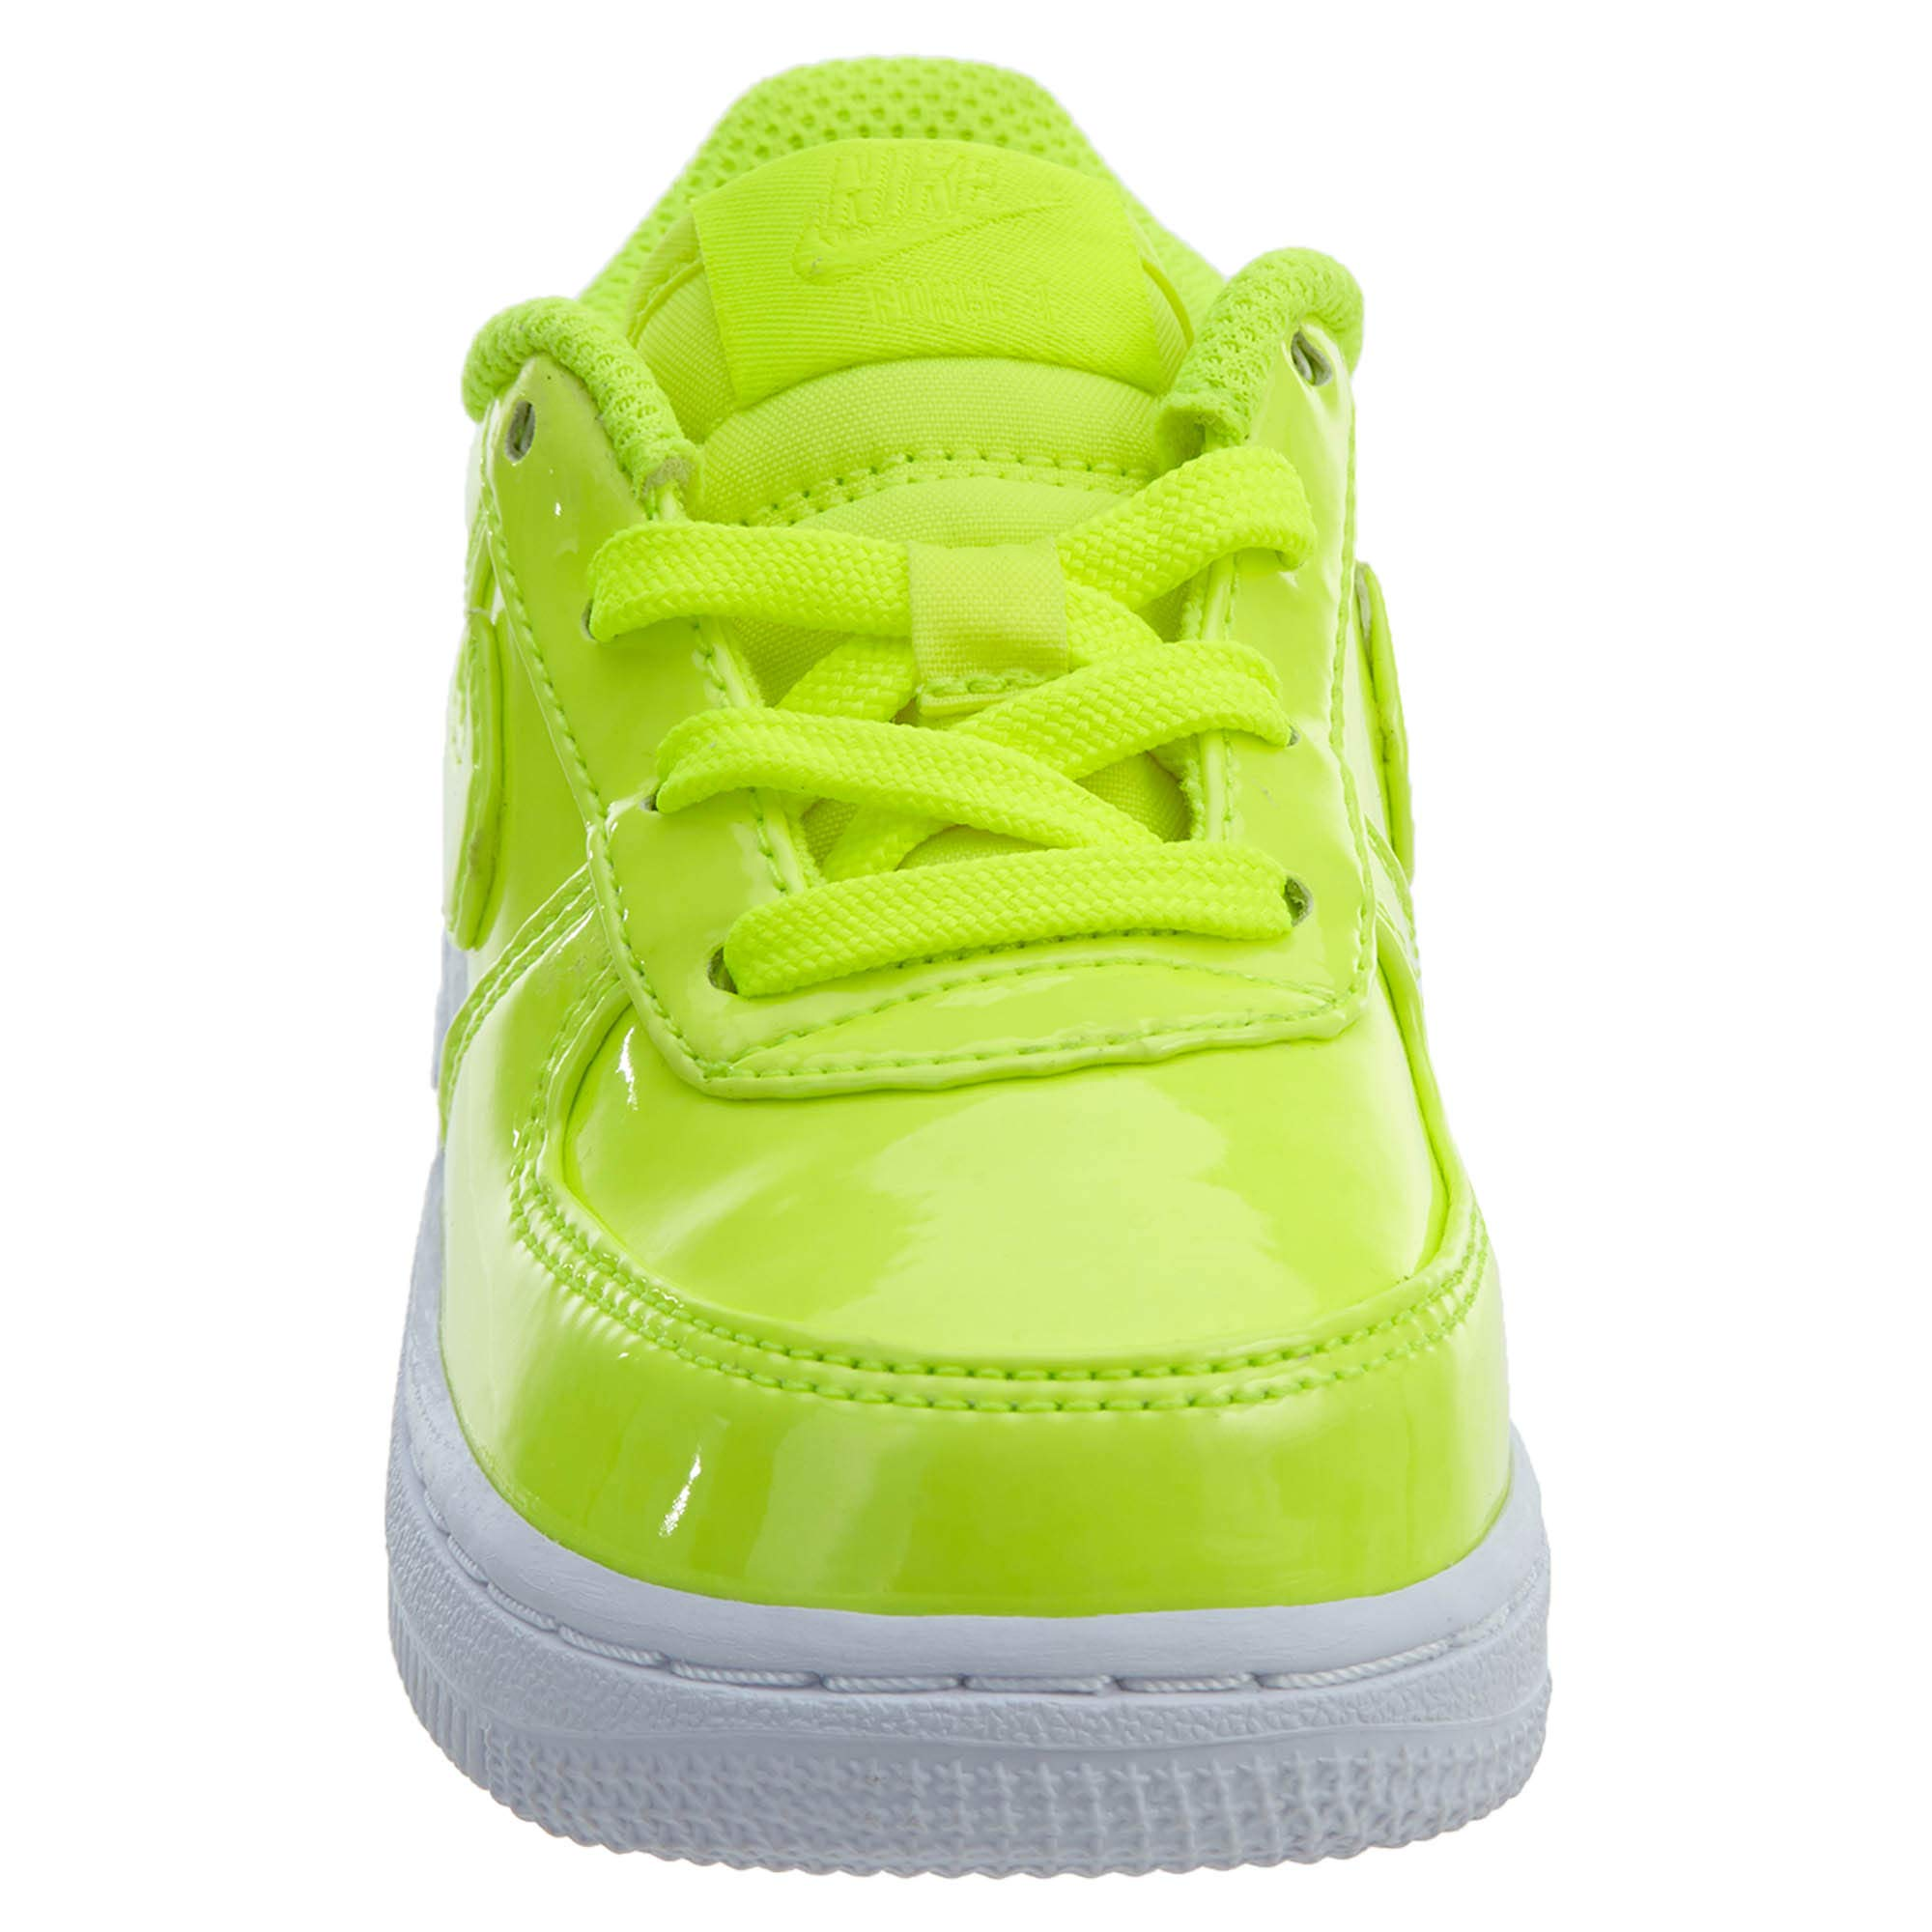 Nike Force 1 Lv8 Uv Toddlers Style: AO2288-700 Size: 6 by Nike (Image #5)